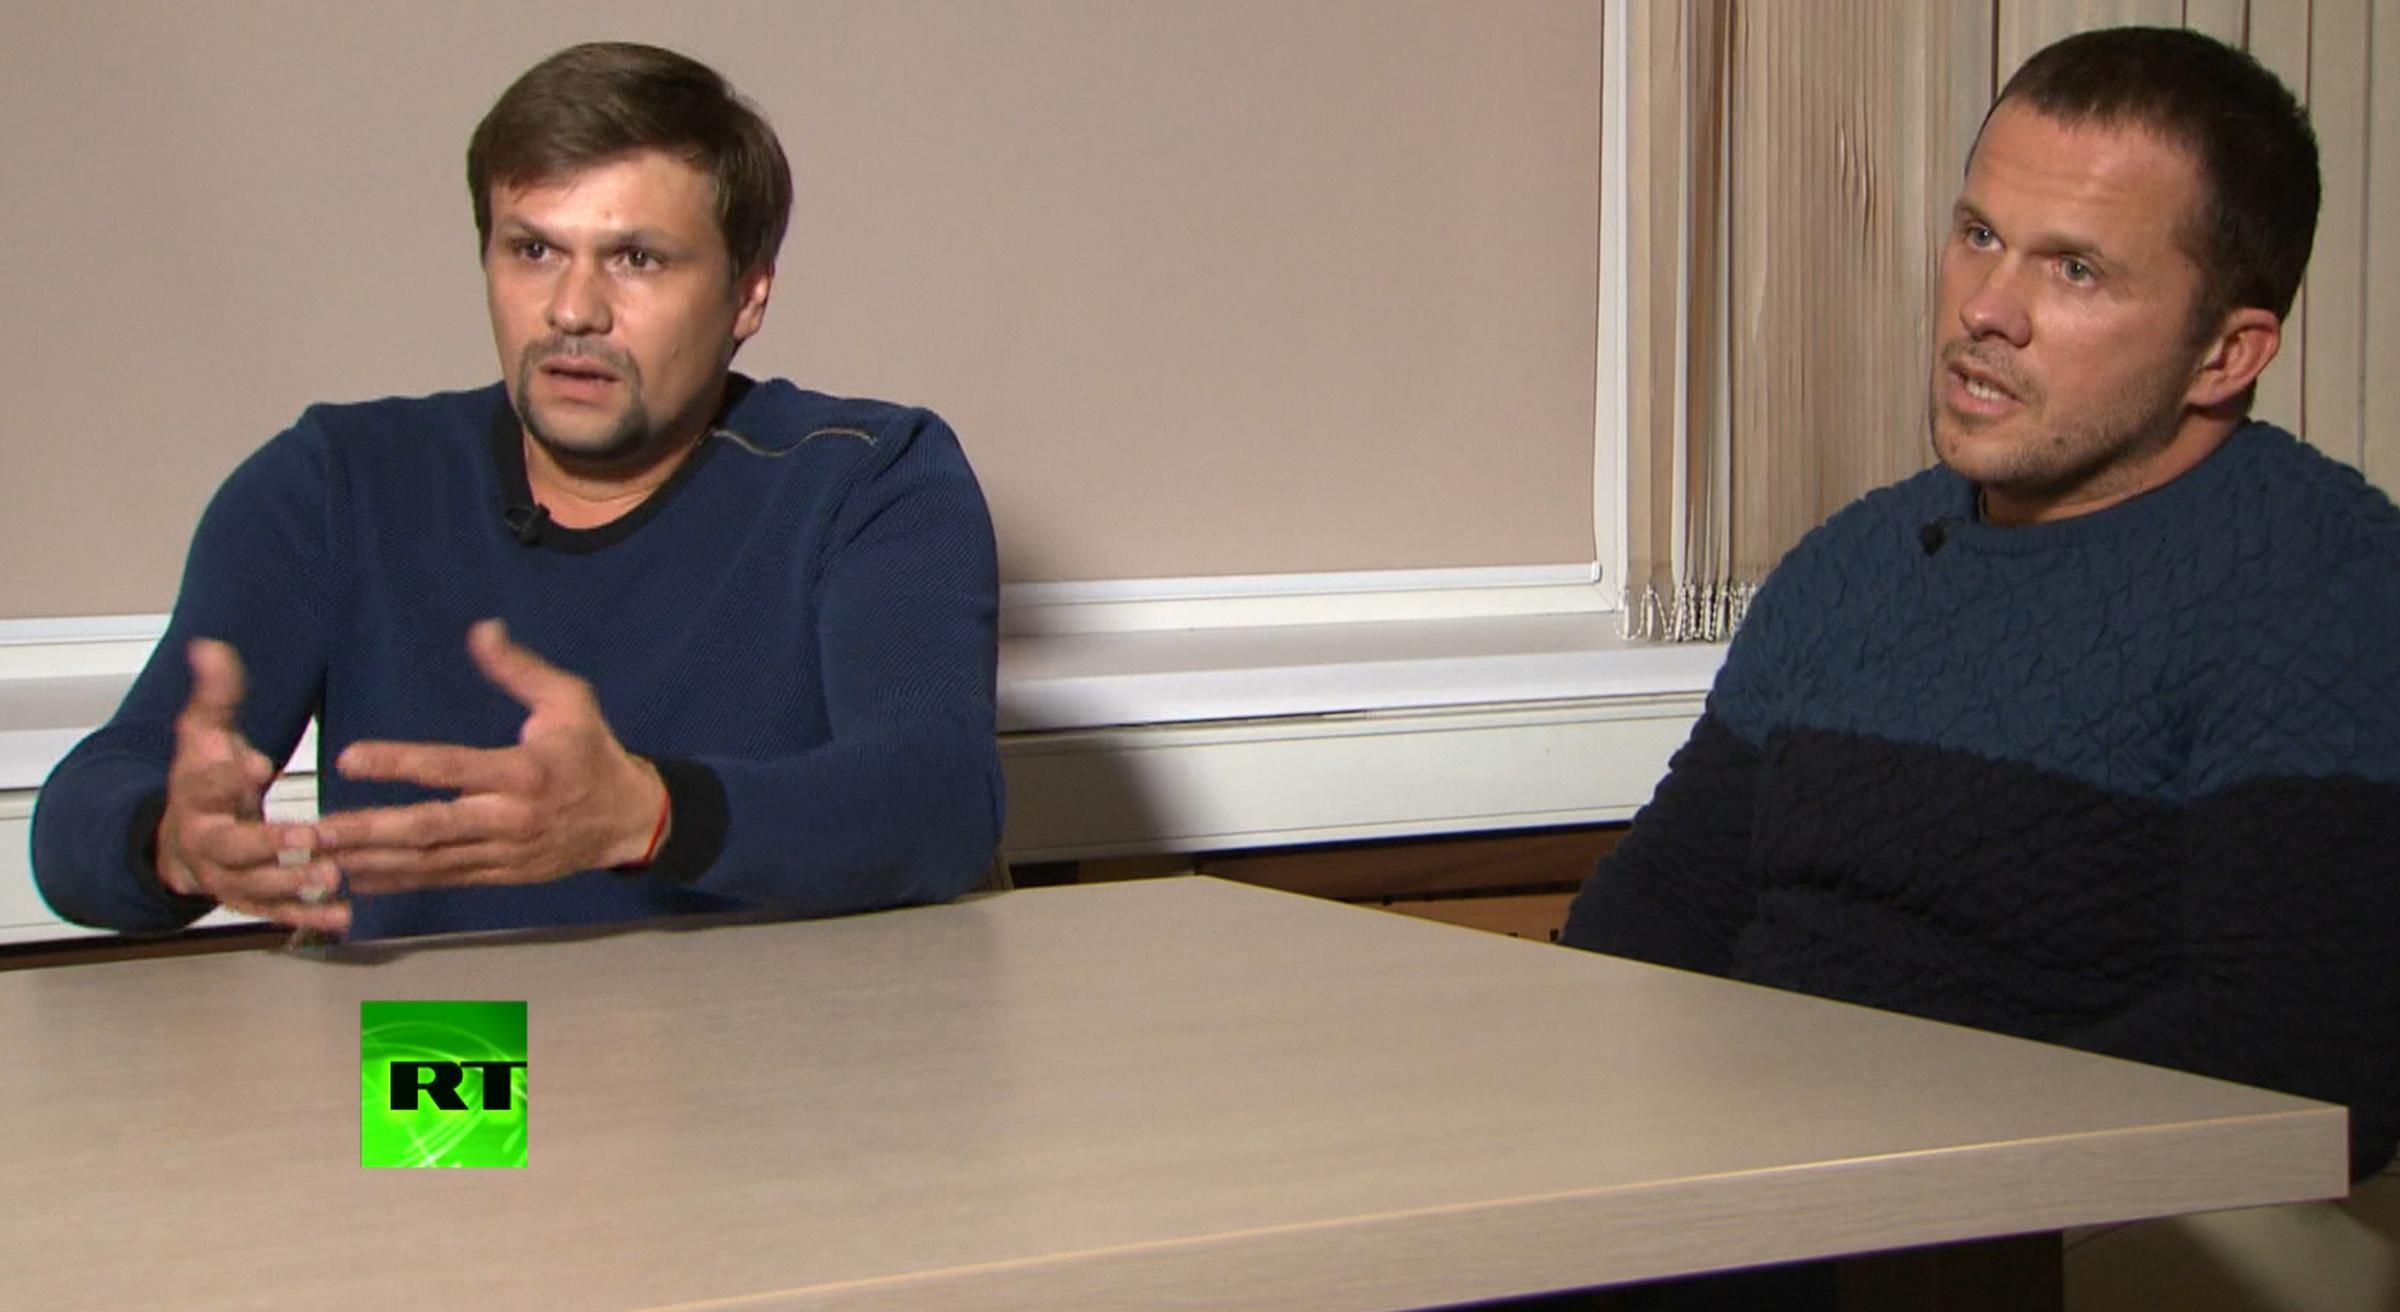 Ruslan Boshirov, left, and Alexander Petrov said they have been left fearing for their lives